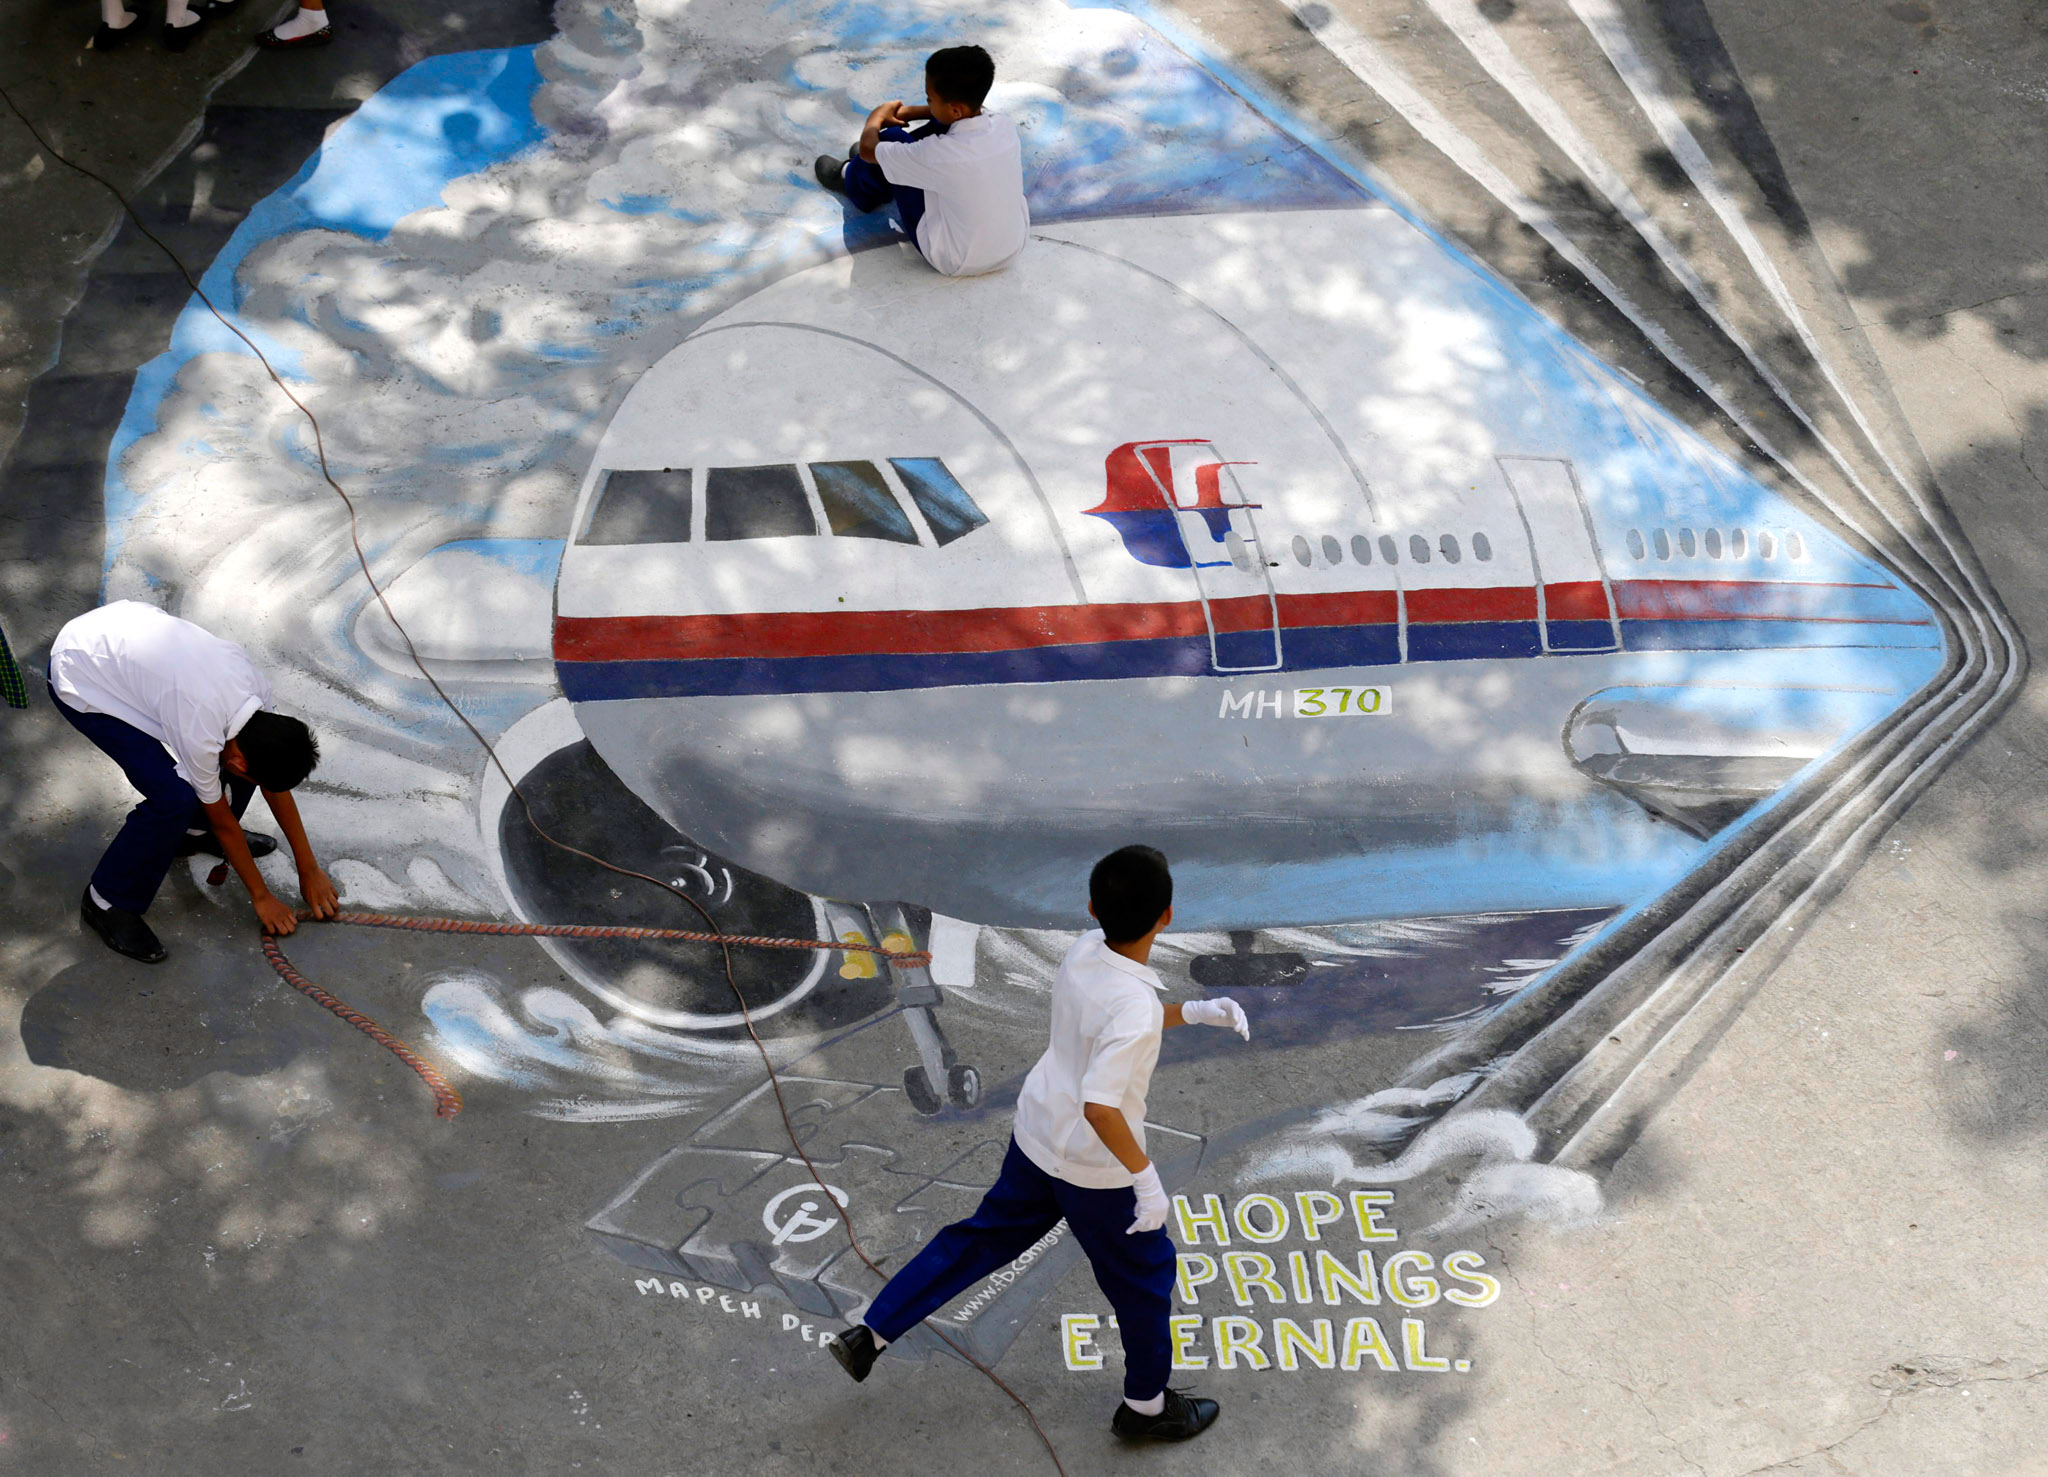 Filipino students are seen on an image of Malaysia Airlines Flight MH370 ....epa04130659 Filipino students are seen on a painting of Malaysia Airlines Flight MH370 at the Benigno Ninoy Aquino High School grounds in Makati City, south of Manila, Philippines, 18 March 2014. Artists from the 'Guhit Visual Arts Group' painted the image to express hope and solidarity for the passengers and crew of the missing Malaysia Airlines flight 370. The search for the Malaysia Airlines passenger jet that disappeared without a trace more than a week ago is expanded to include a wider area spanning from Australia to Kazakhstan.  EPA/FRANCIS R. MALASIG